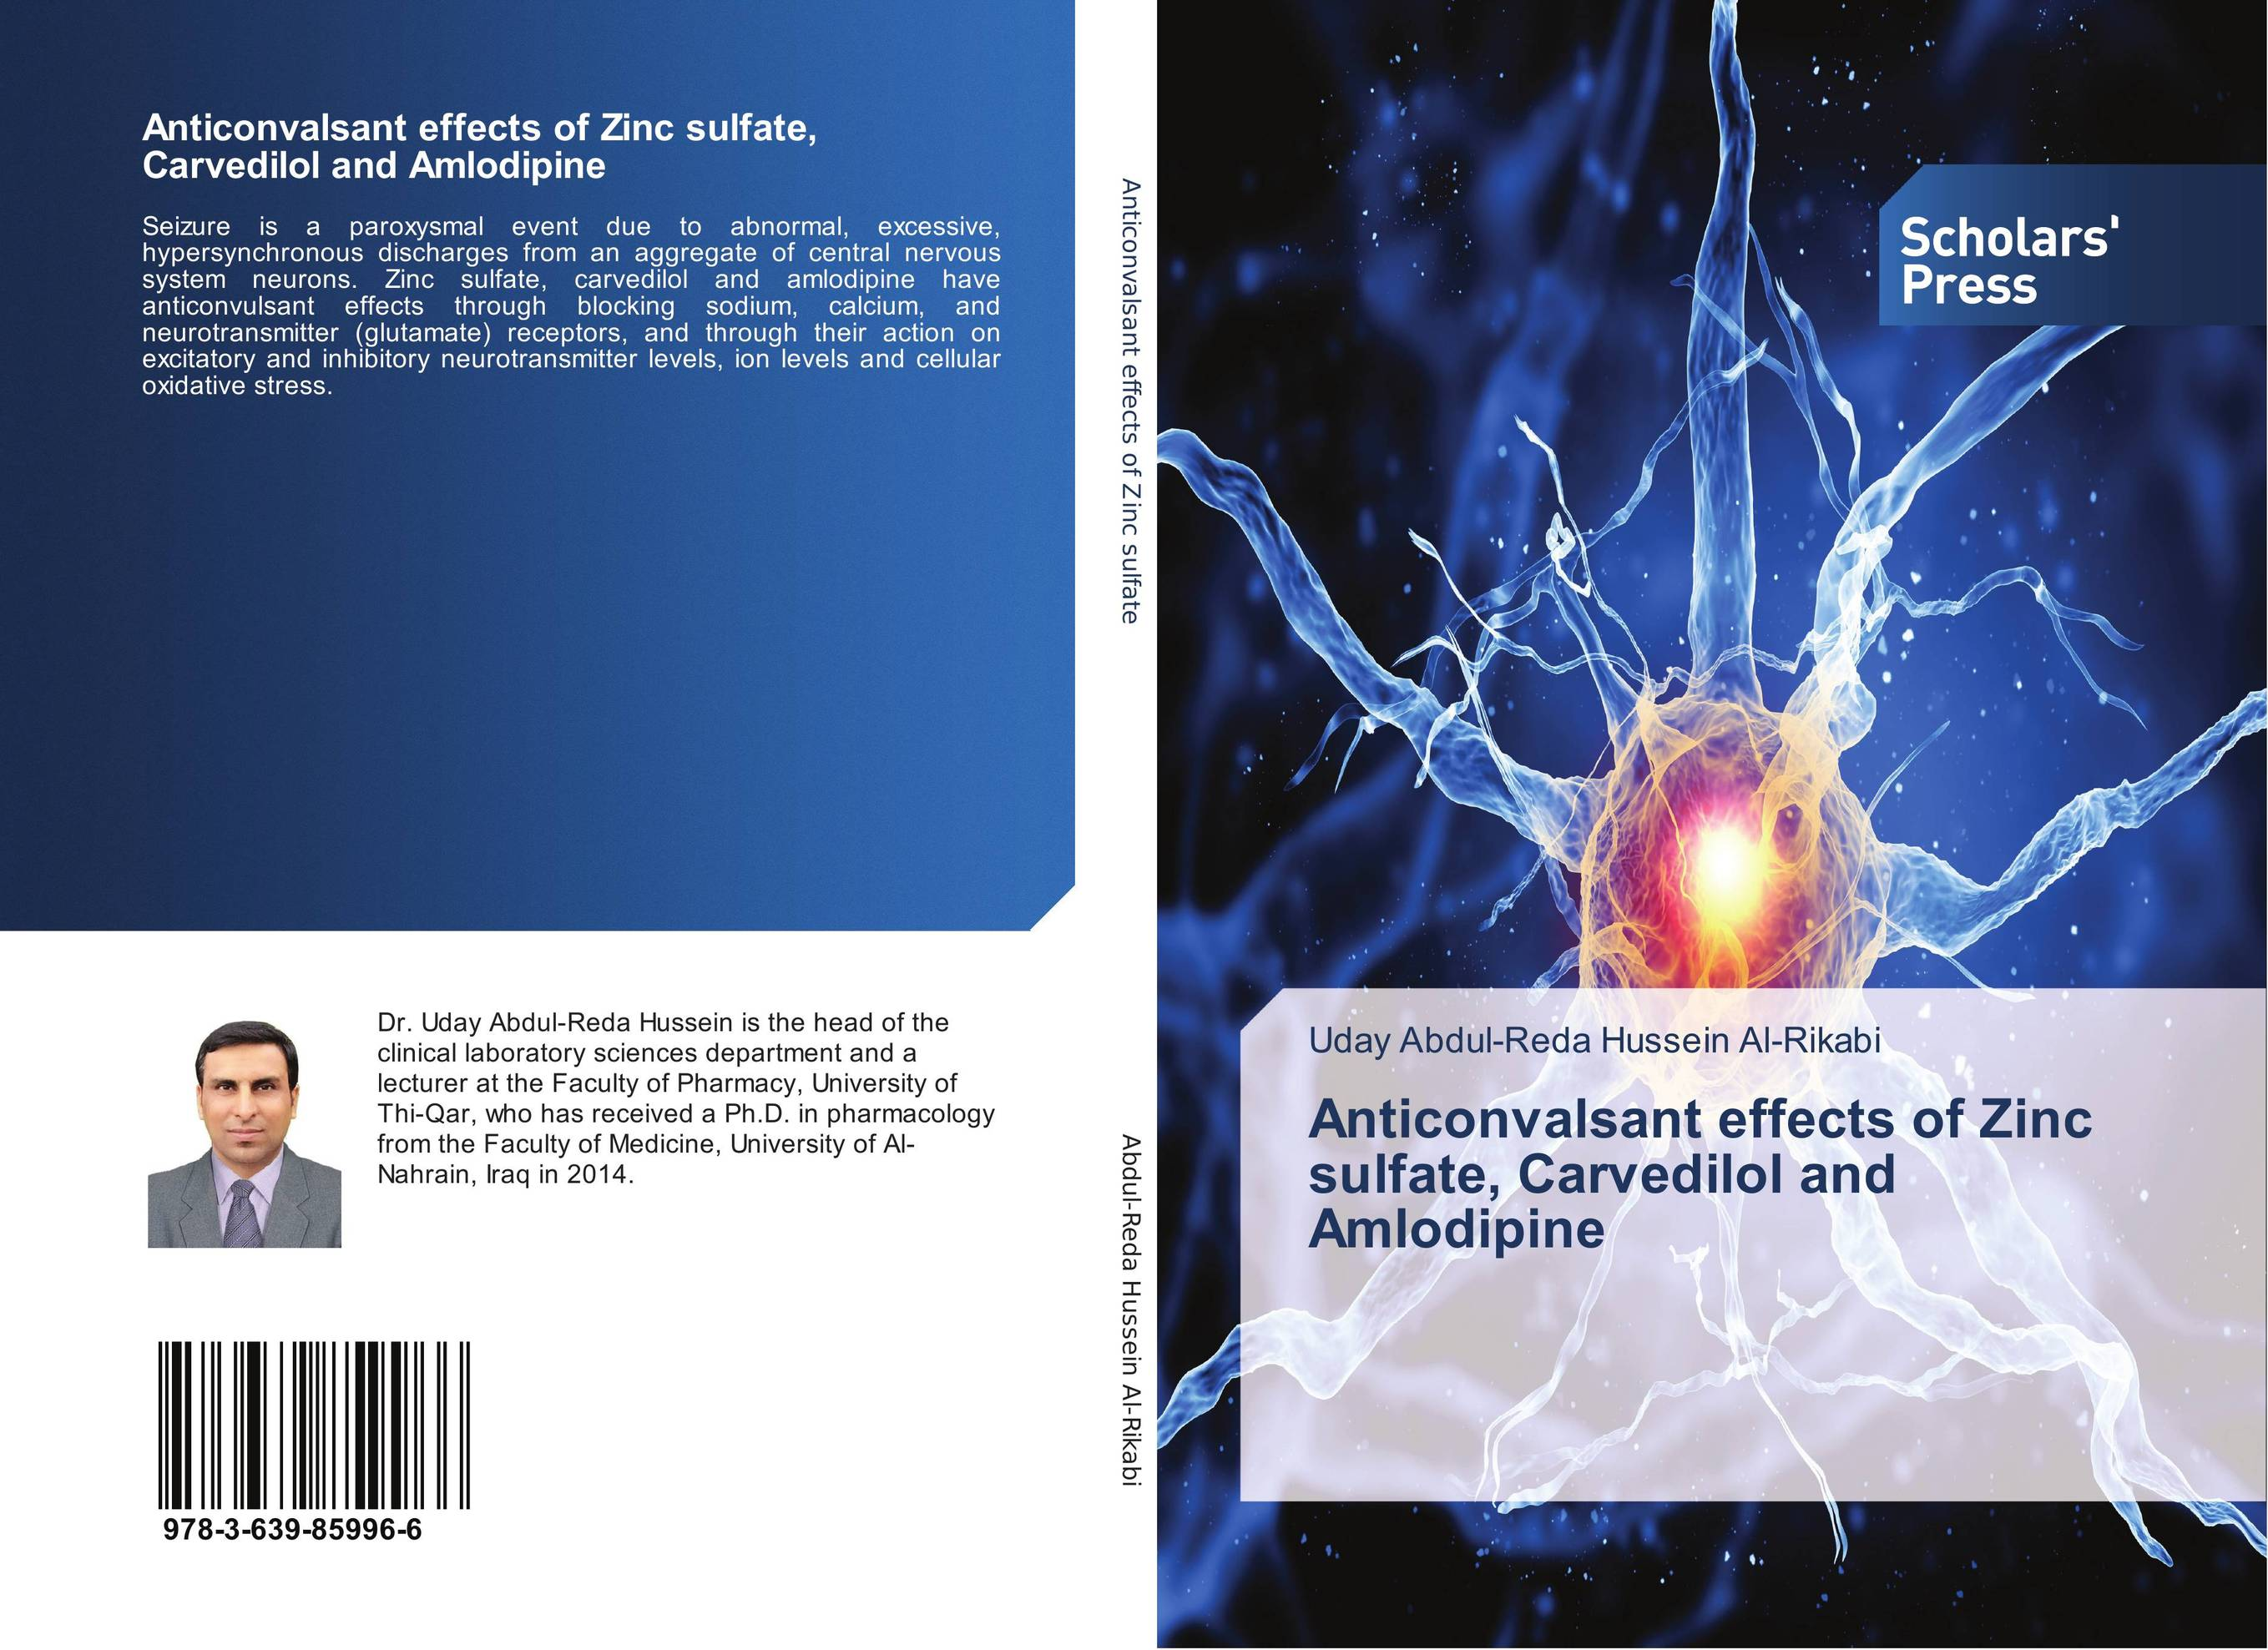 Anticonvalsant effects of Zinc sulfate, Carvedilol and Amlodipine 5 bottles 500pills diabetes treatment radix rehmannia extract effects on central nervous system and cardiovascular function